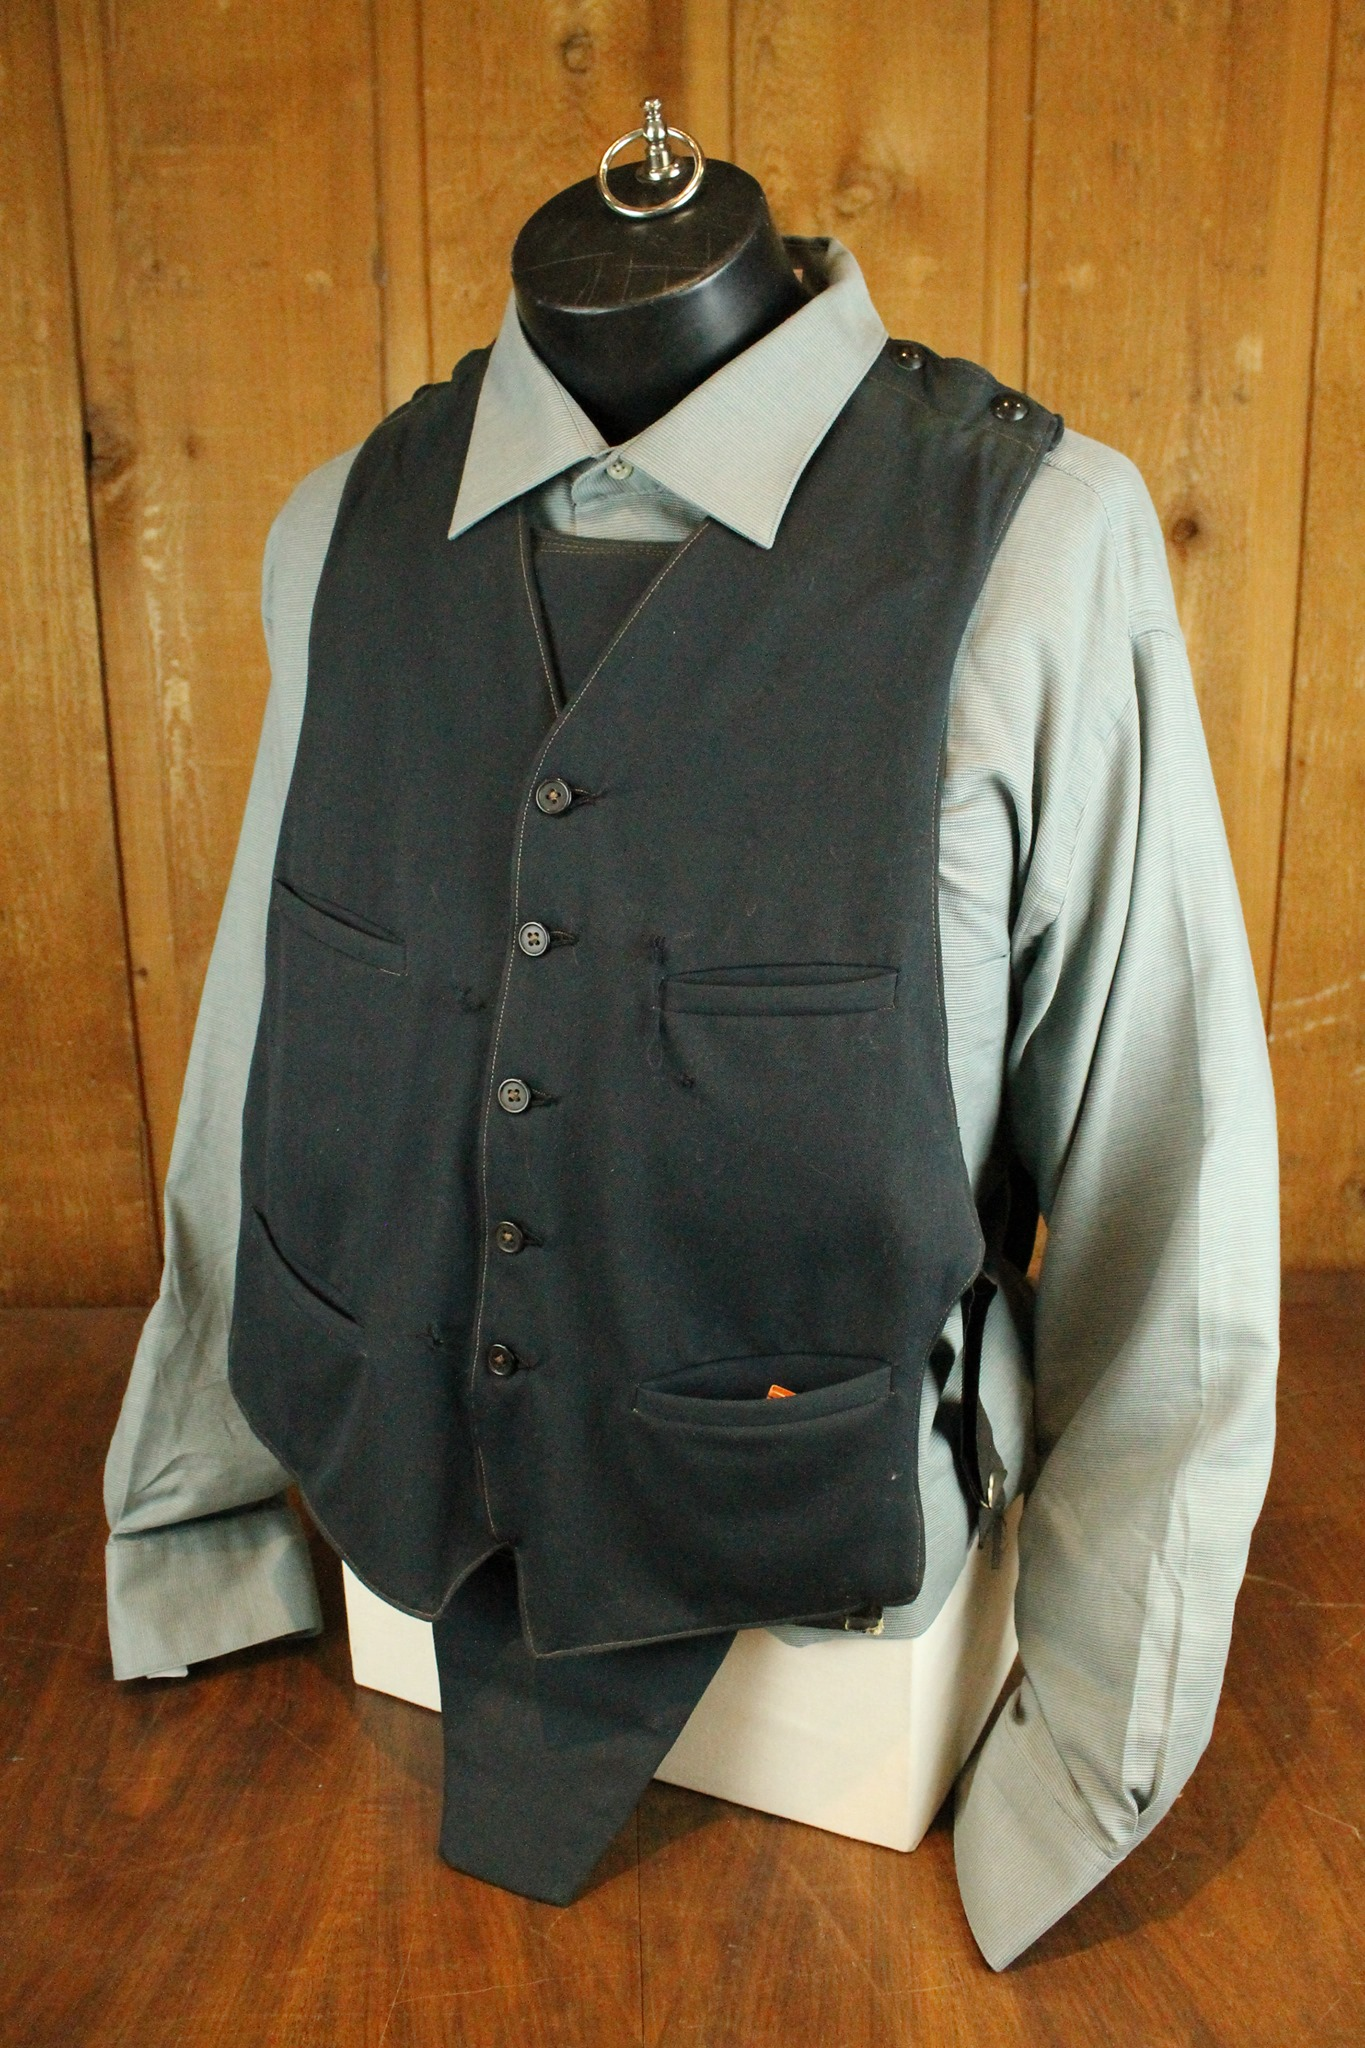 soft black vest with 5 buttons and 4 pockets